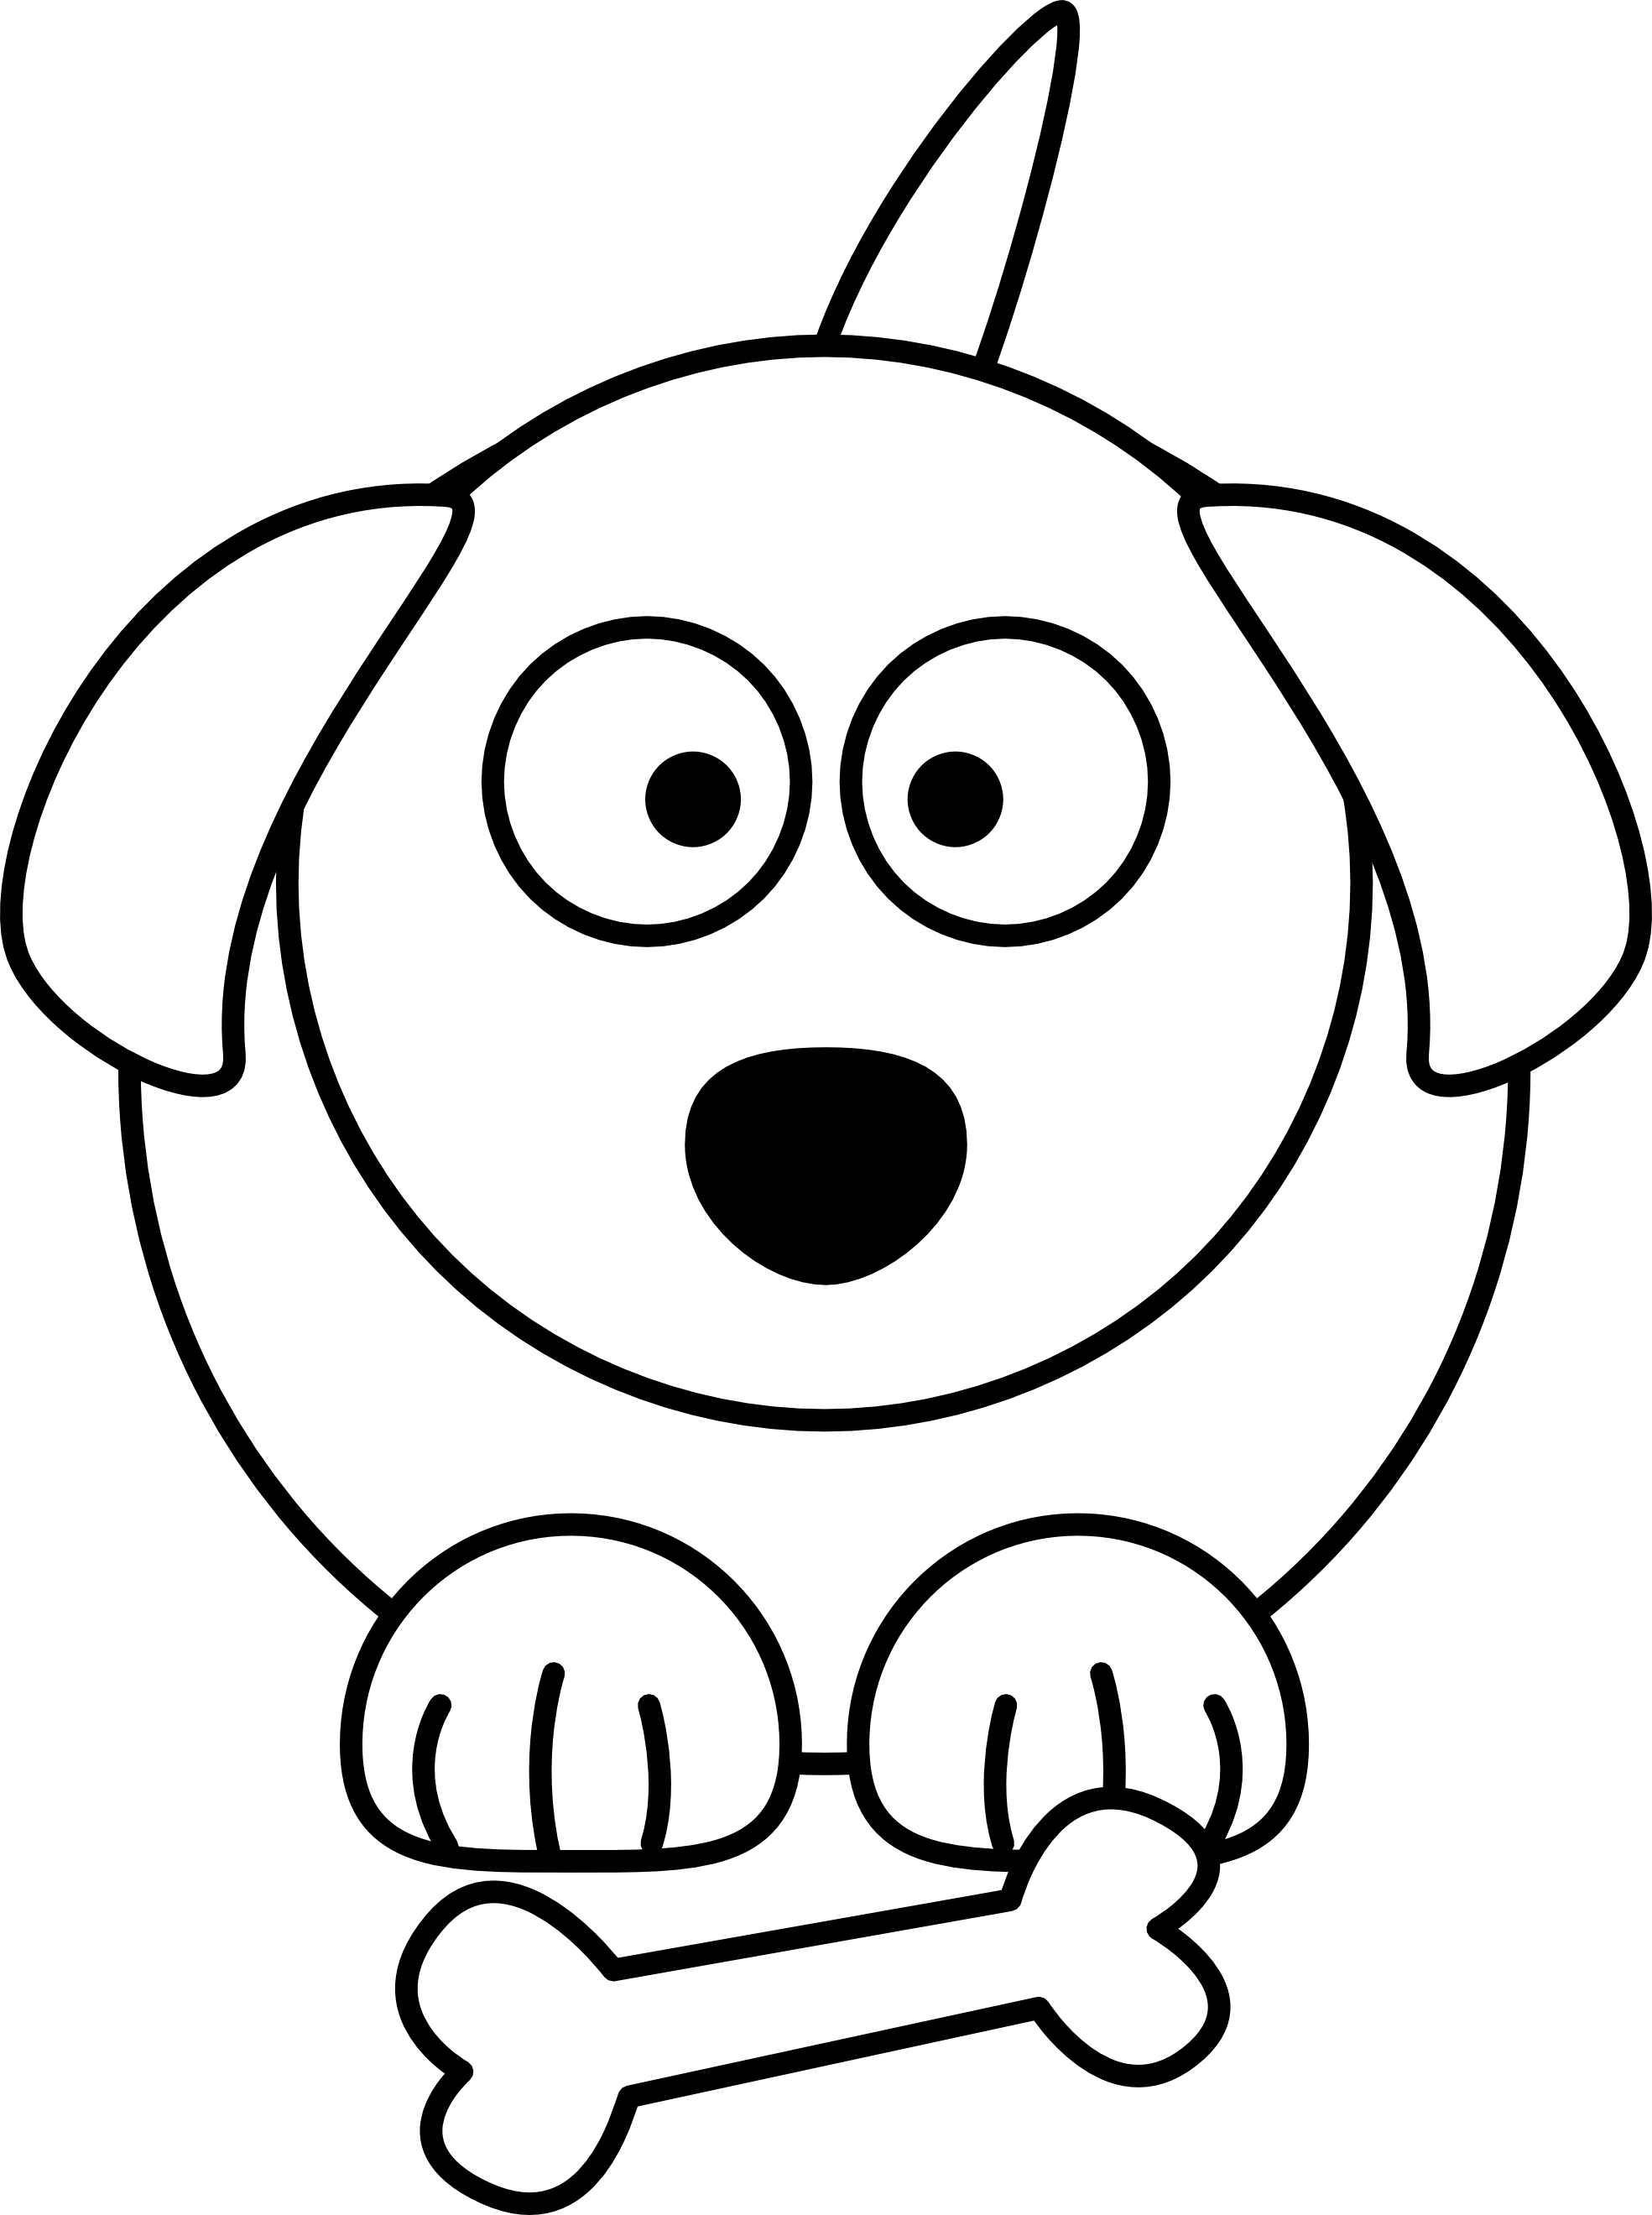 Husky dog clipart black and white vector transparent library White Cartoon Dogs Group (35+) vector transparent library